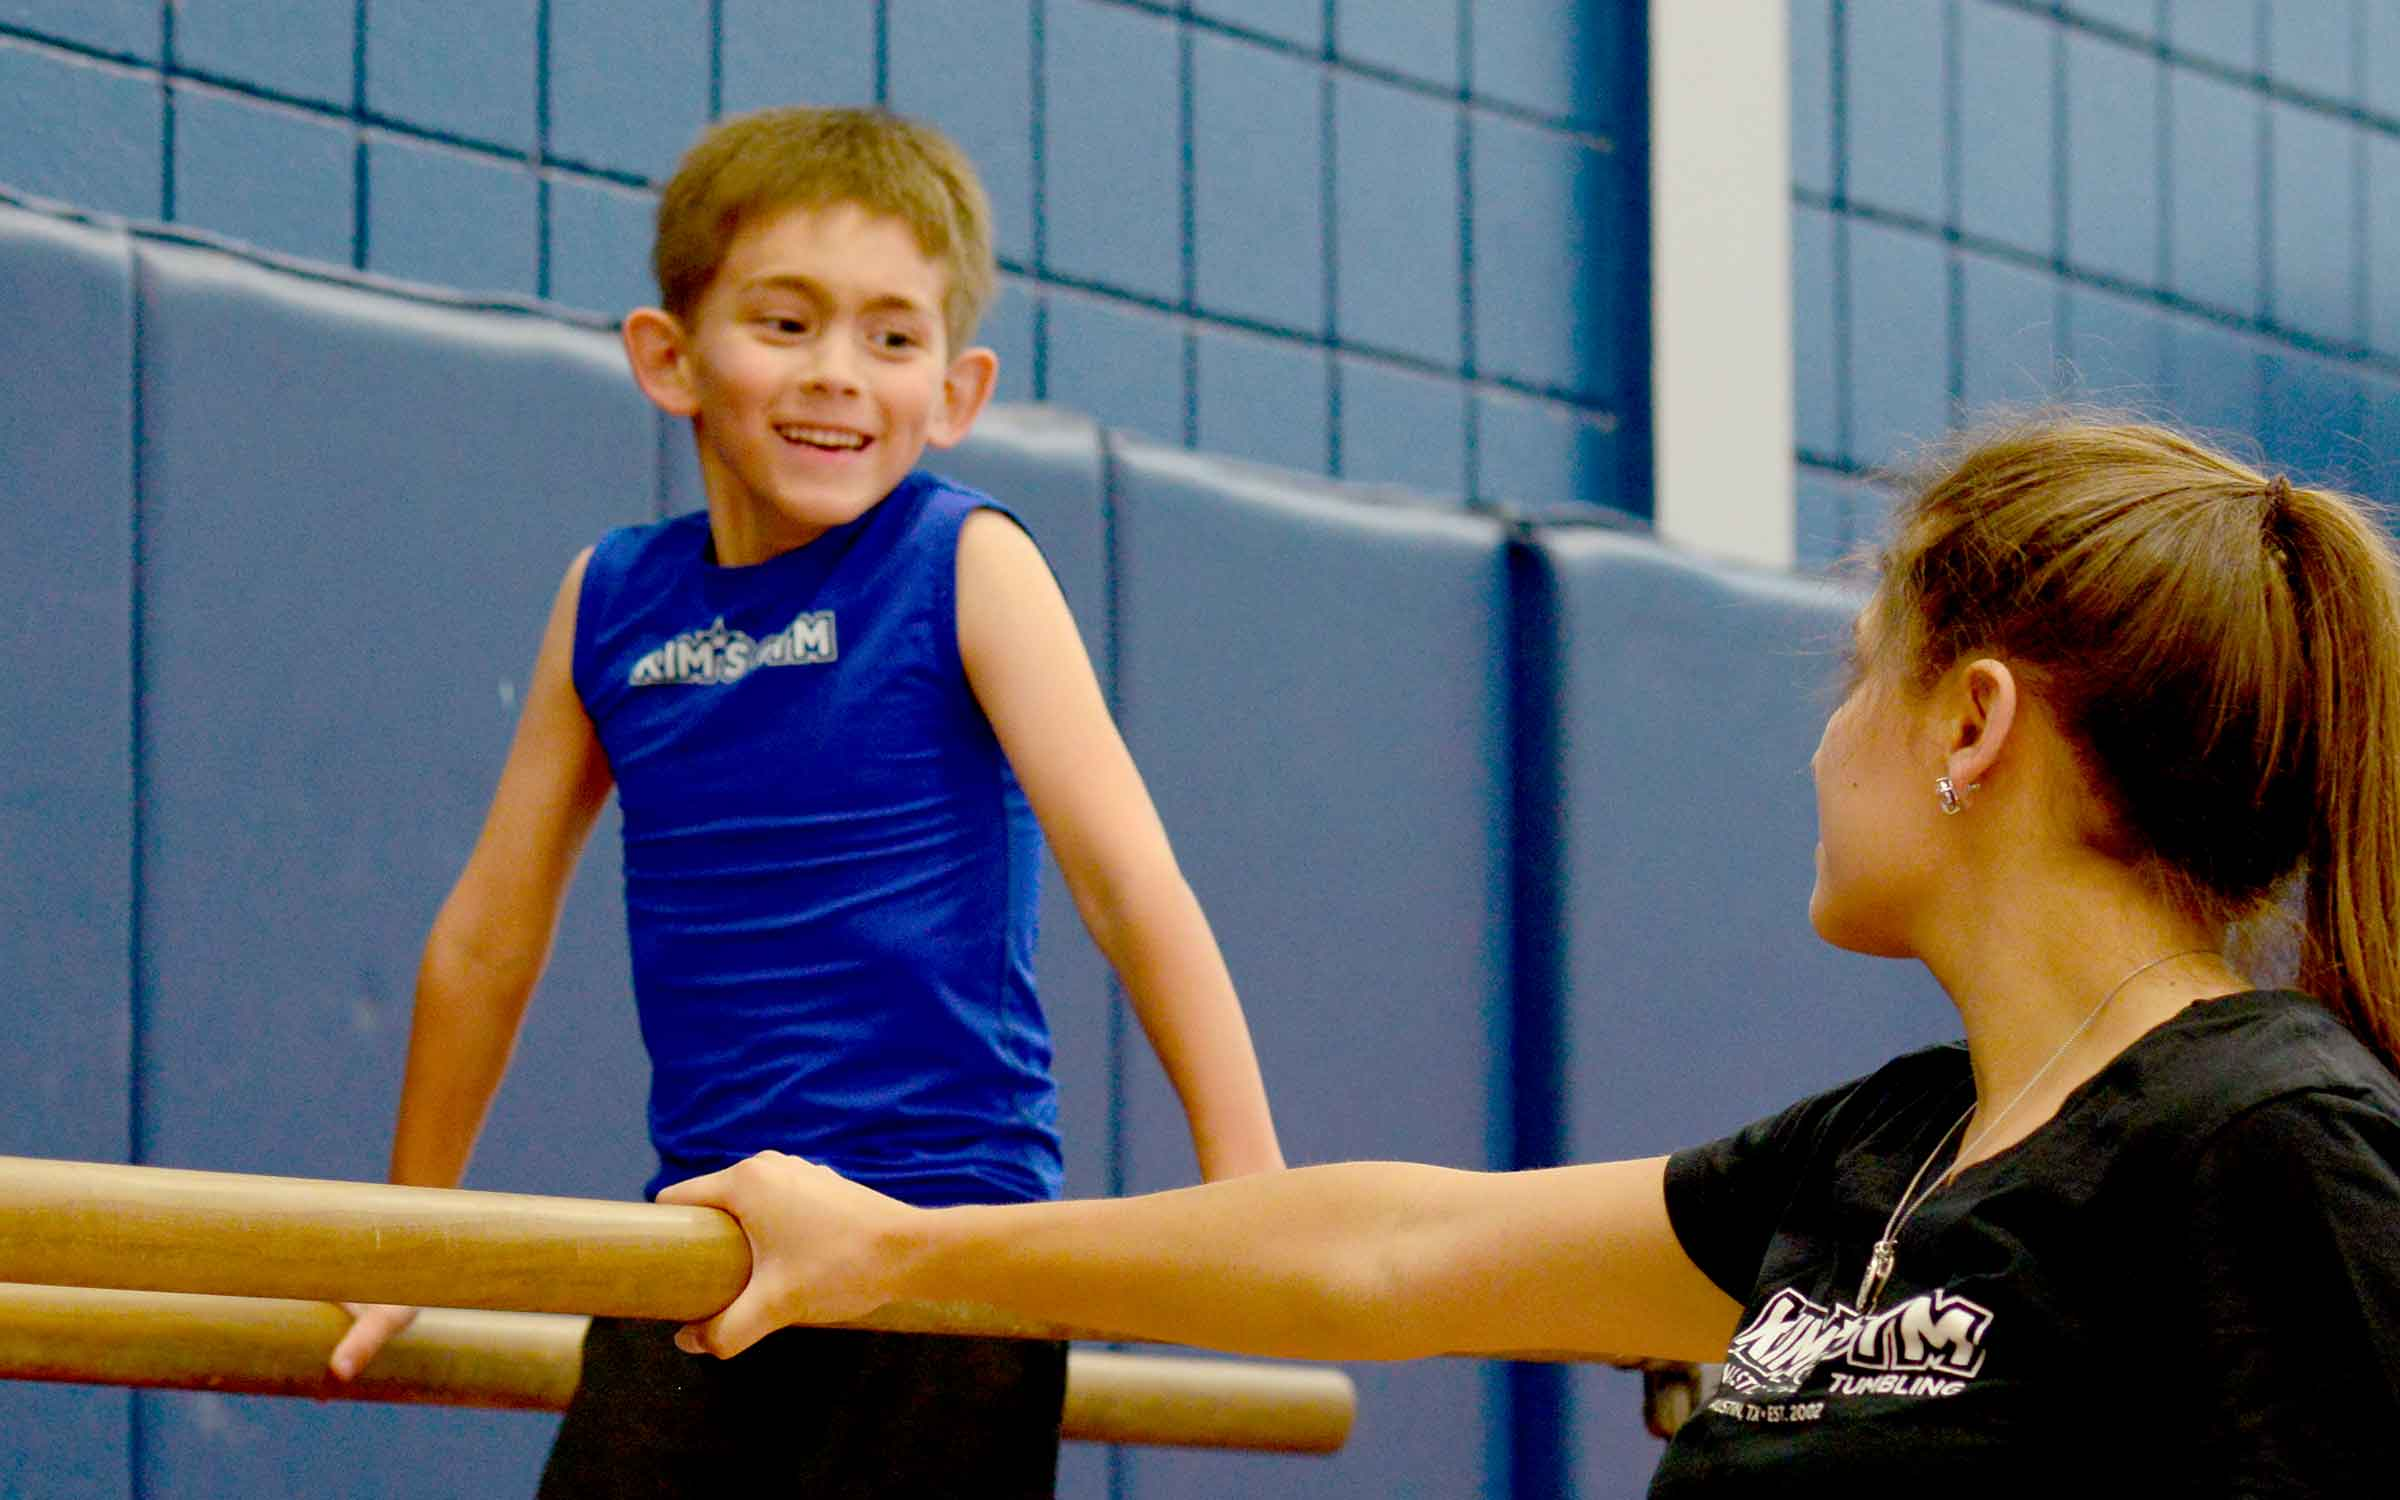 A boy practices gymnastics during a private lesson.